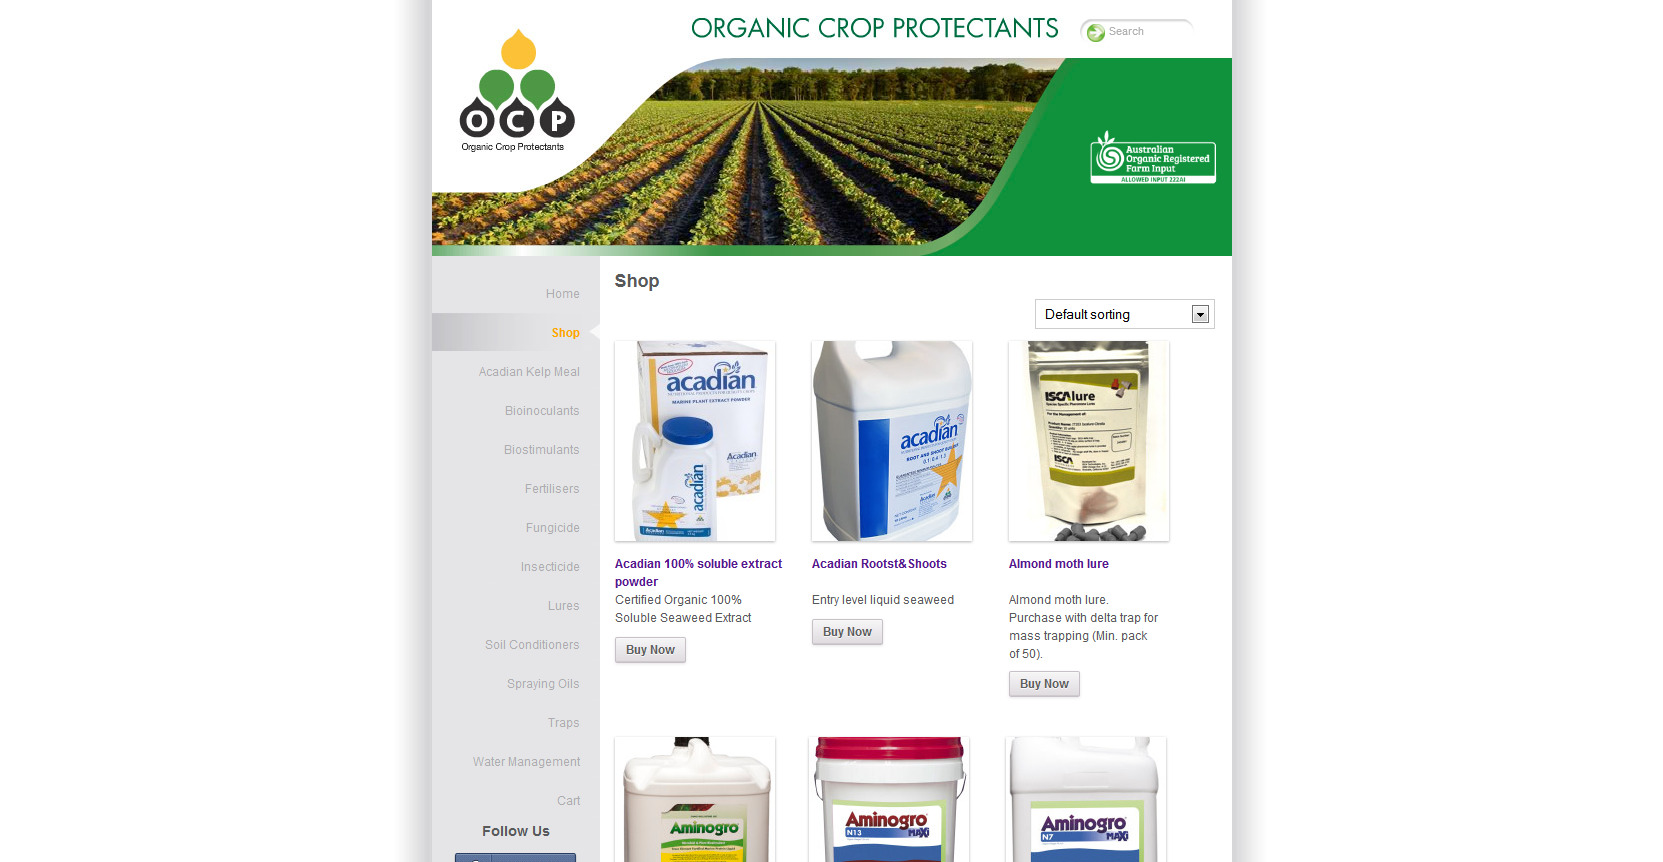 ocp home page